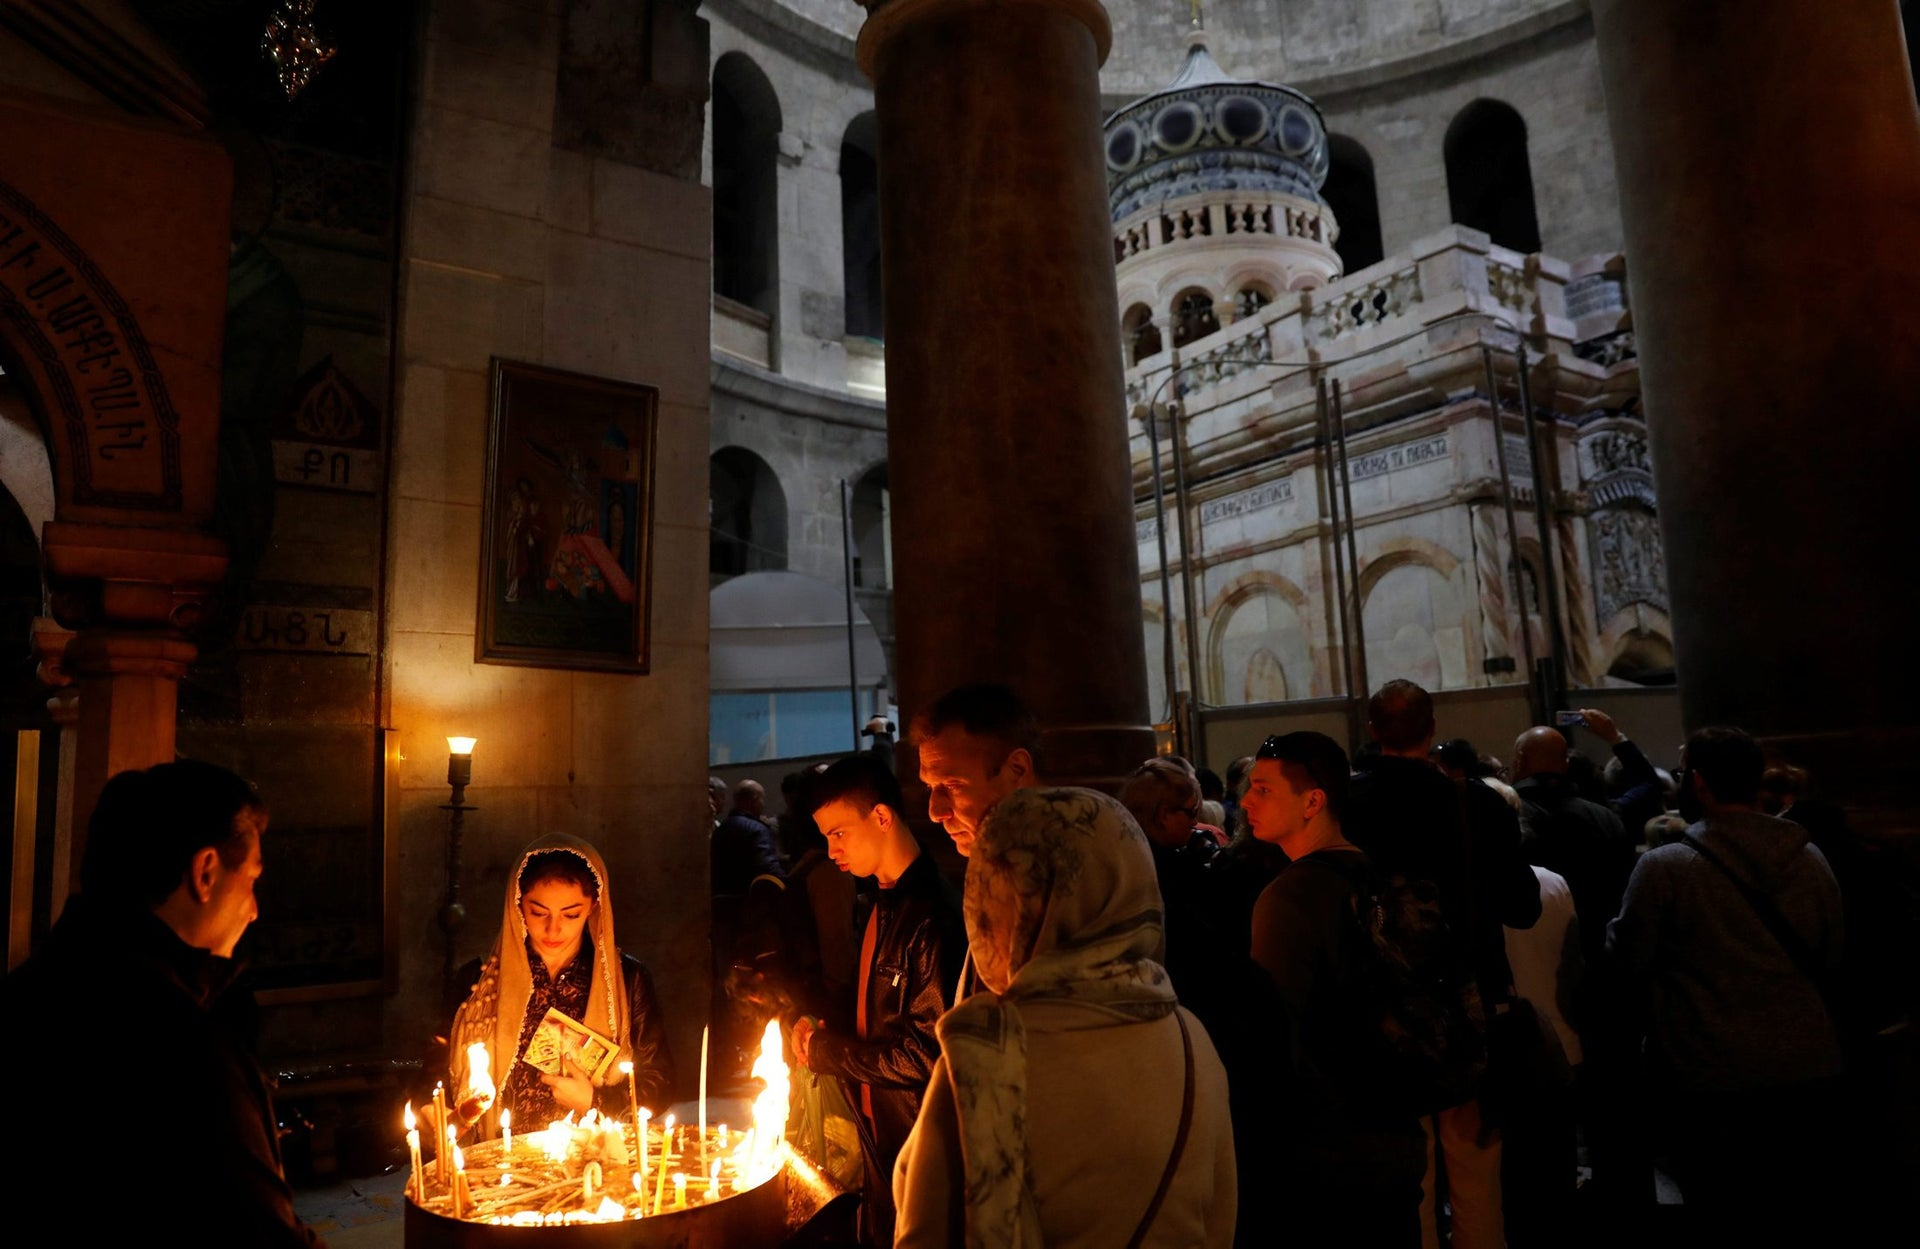 Worshippers light candles as the newly restored Edicule, the ancient structure housing the tomb, which according to Christian belief is where Jesus's body was anointed and buried, is seen in the background at the Church of the Holy Sepulchre in Jerusalem's Old City March 20, 2017.